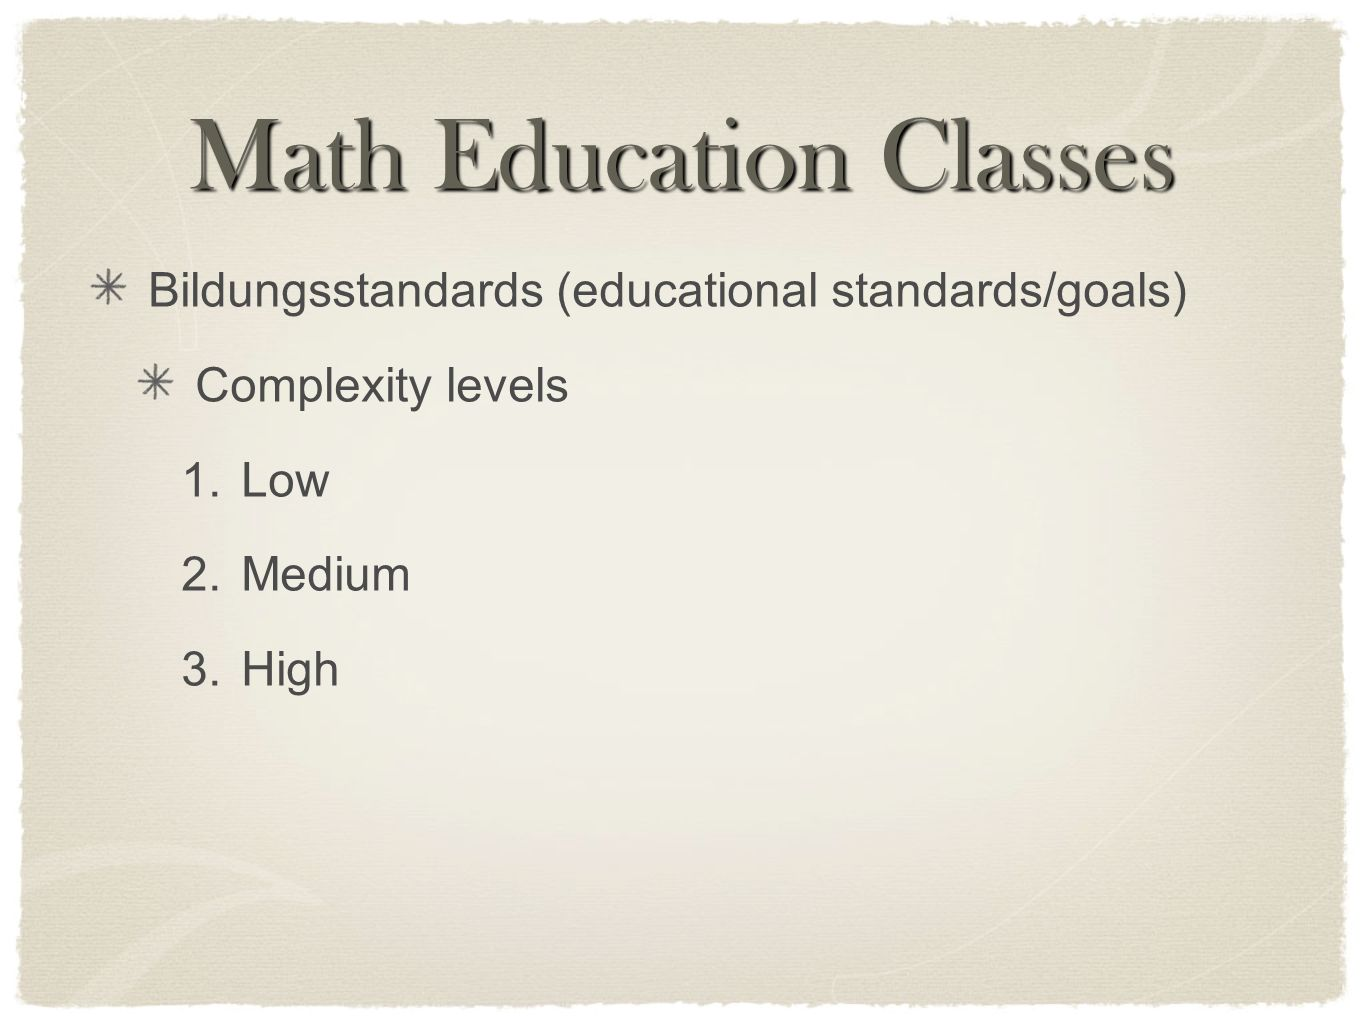 Bildungsstandards (educational standards/goals) Complexity levels 1. Low 2. Medium 3. High